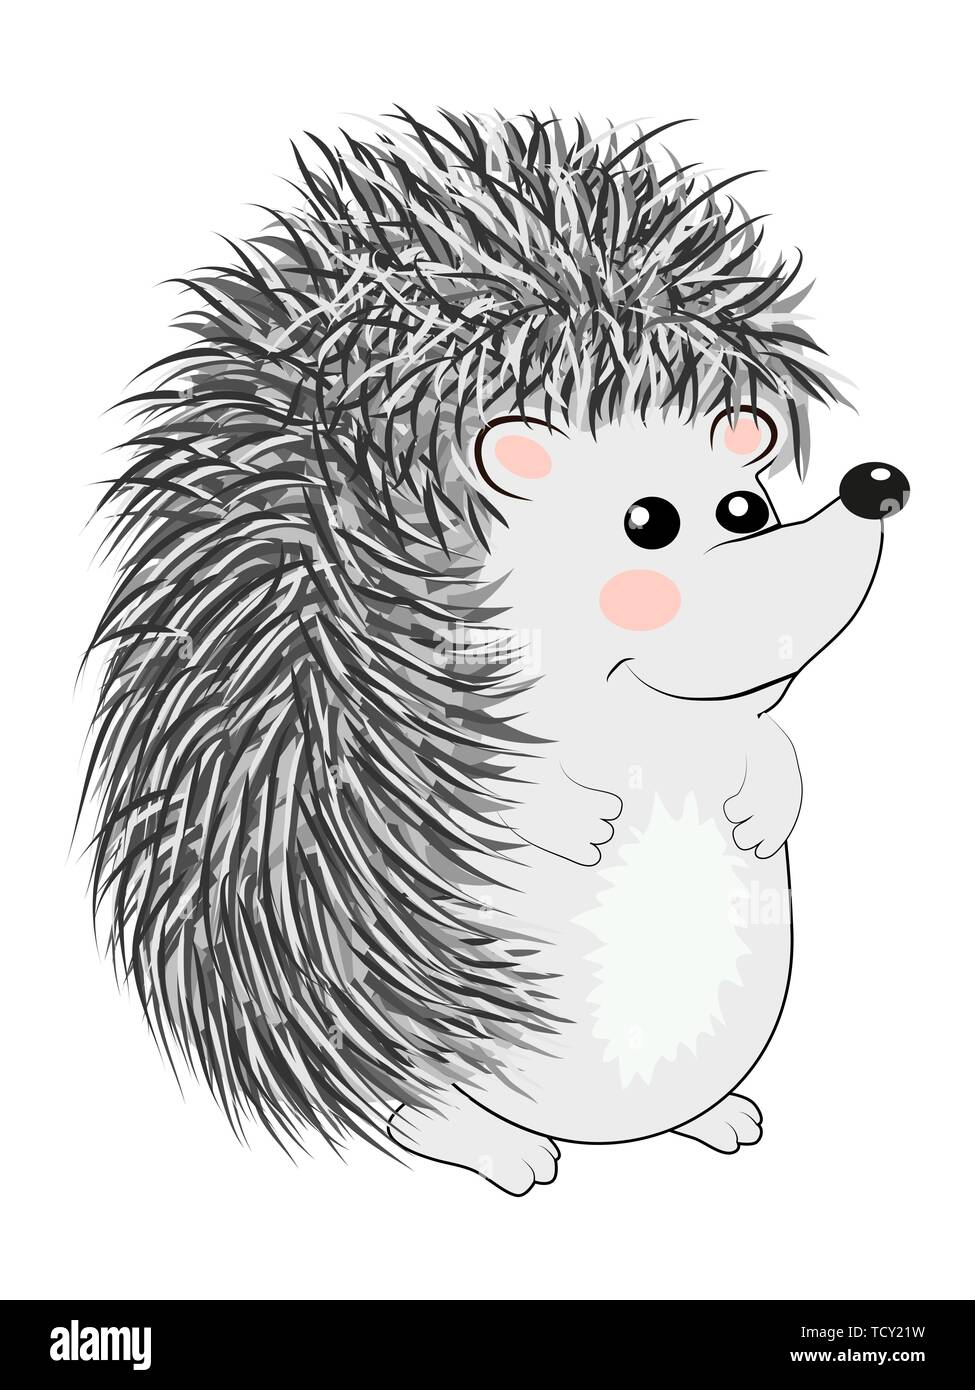 Cool little gray hedgehog in cartoon style wearing. cartoon emoticon pattern toy. - Stock Image